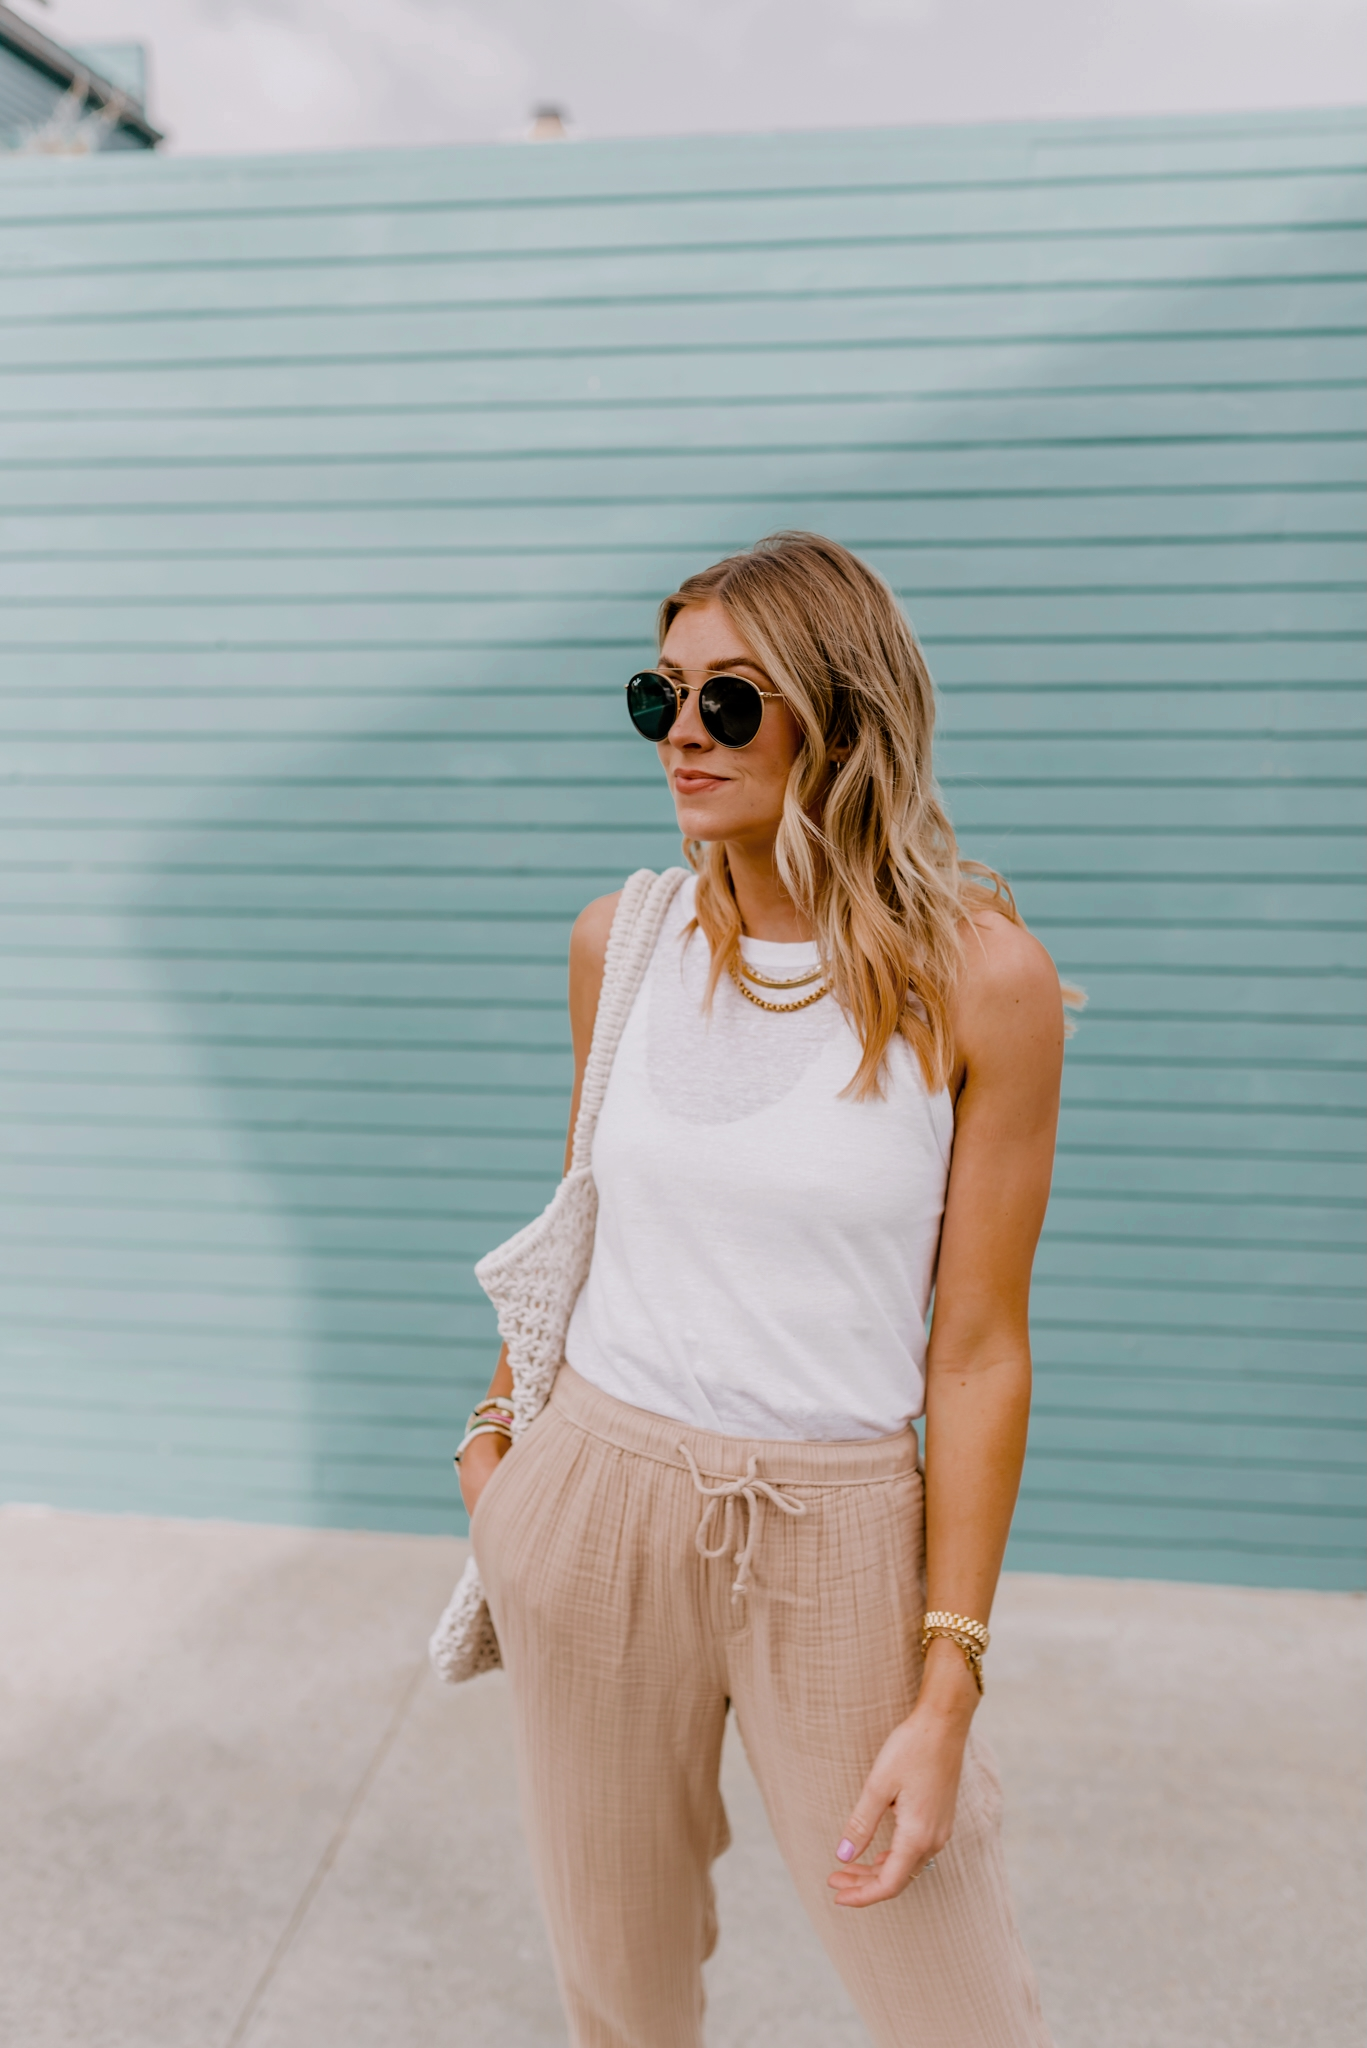 woman posing and wearing white top and sunglasses from Amazon home and fashion favorites